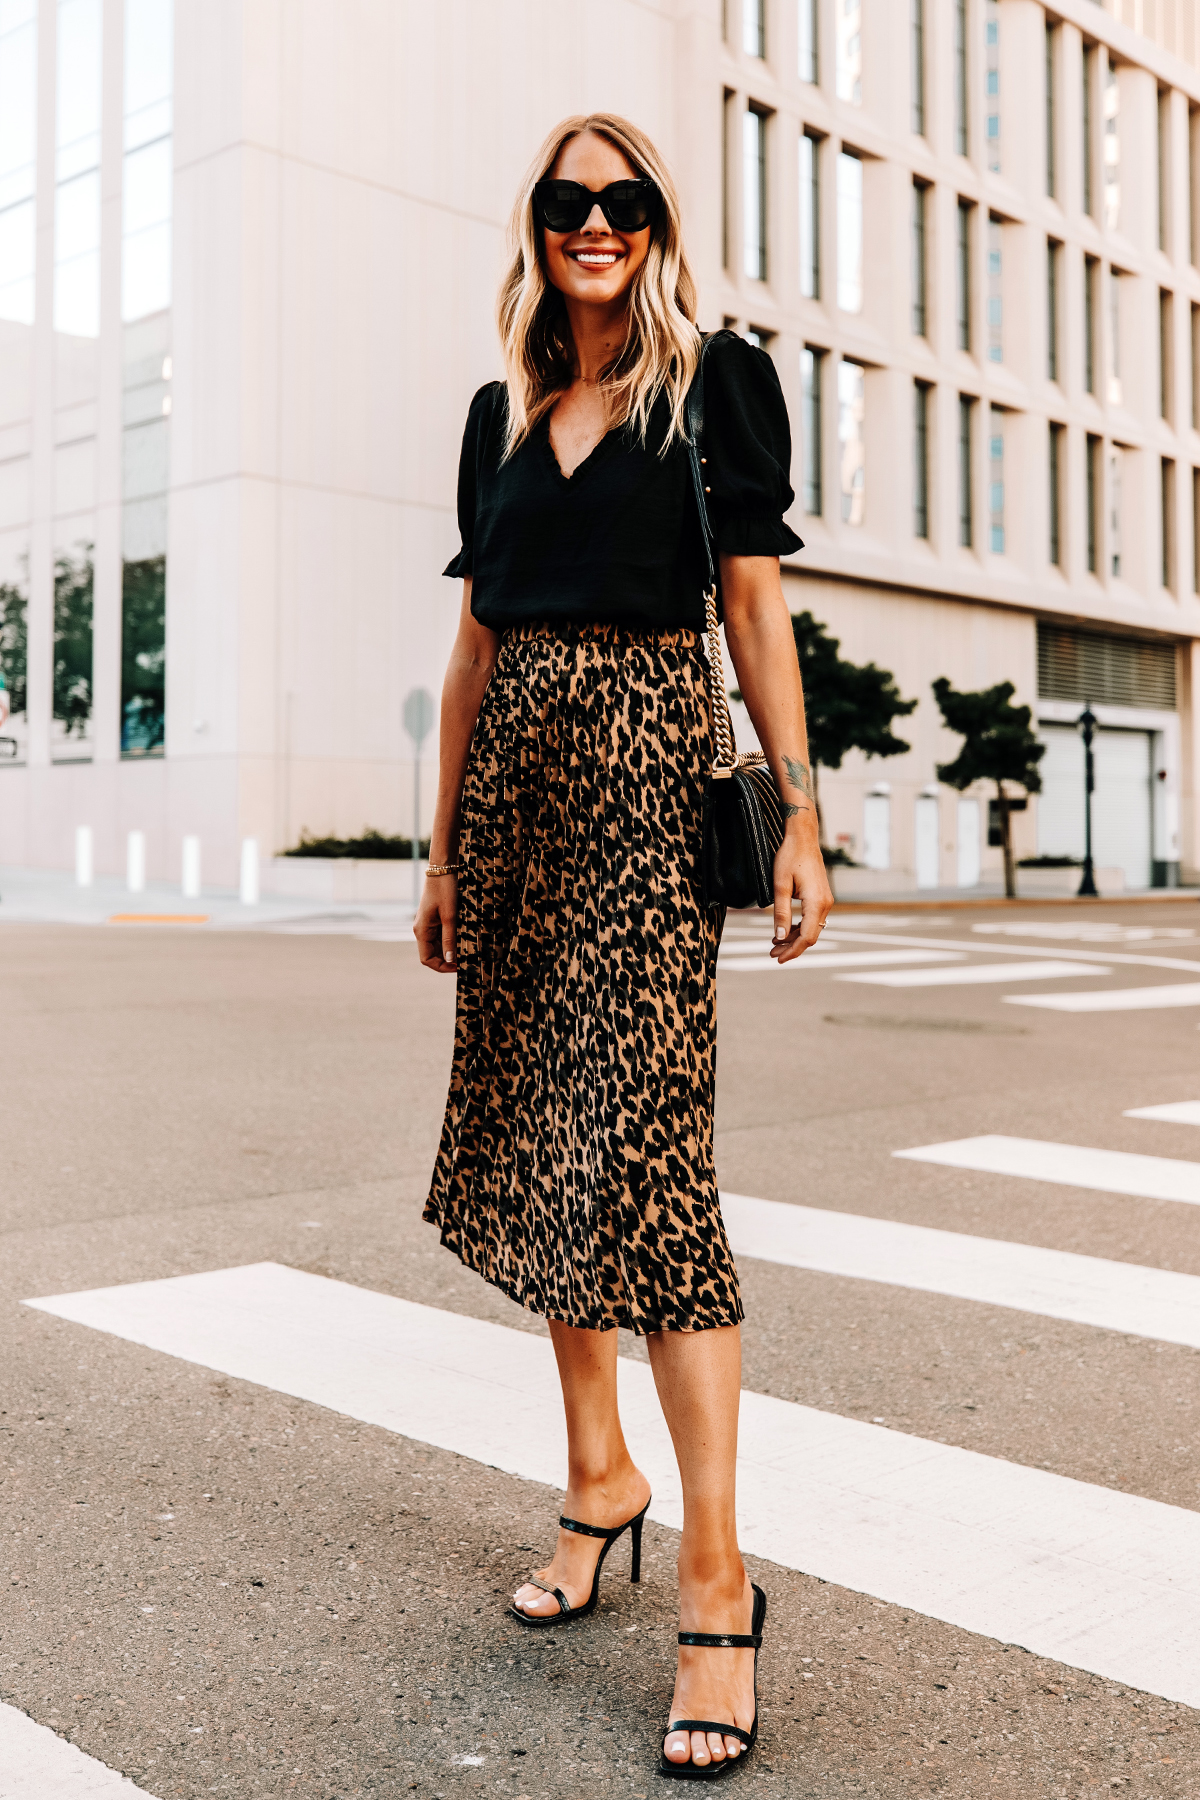 Fashion Jackson Wearing Black Top Leopard Midi Skirt Black Heeled Sandals 2